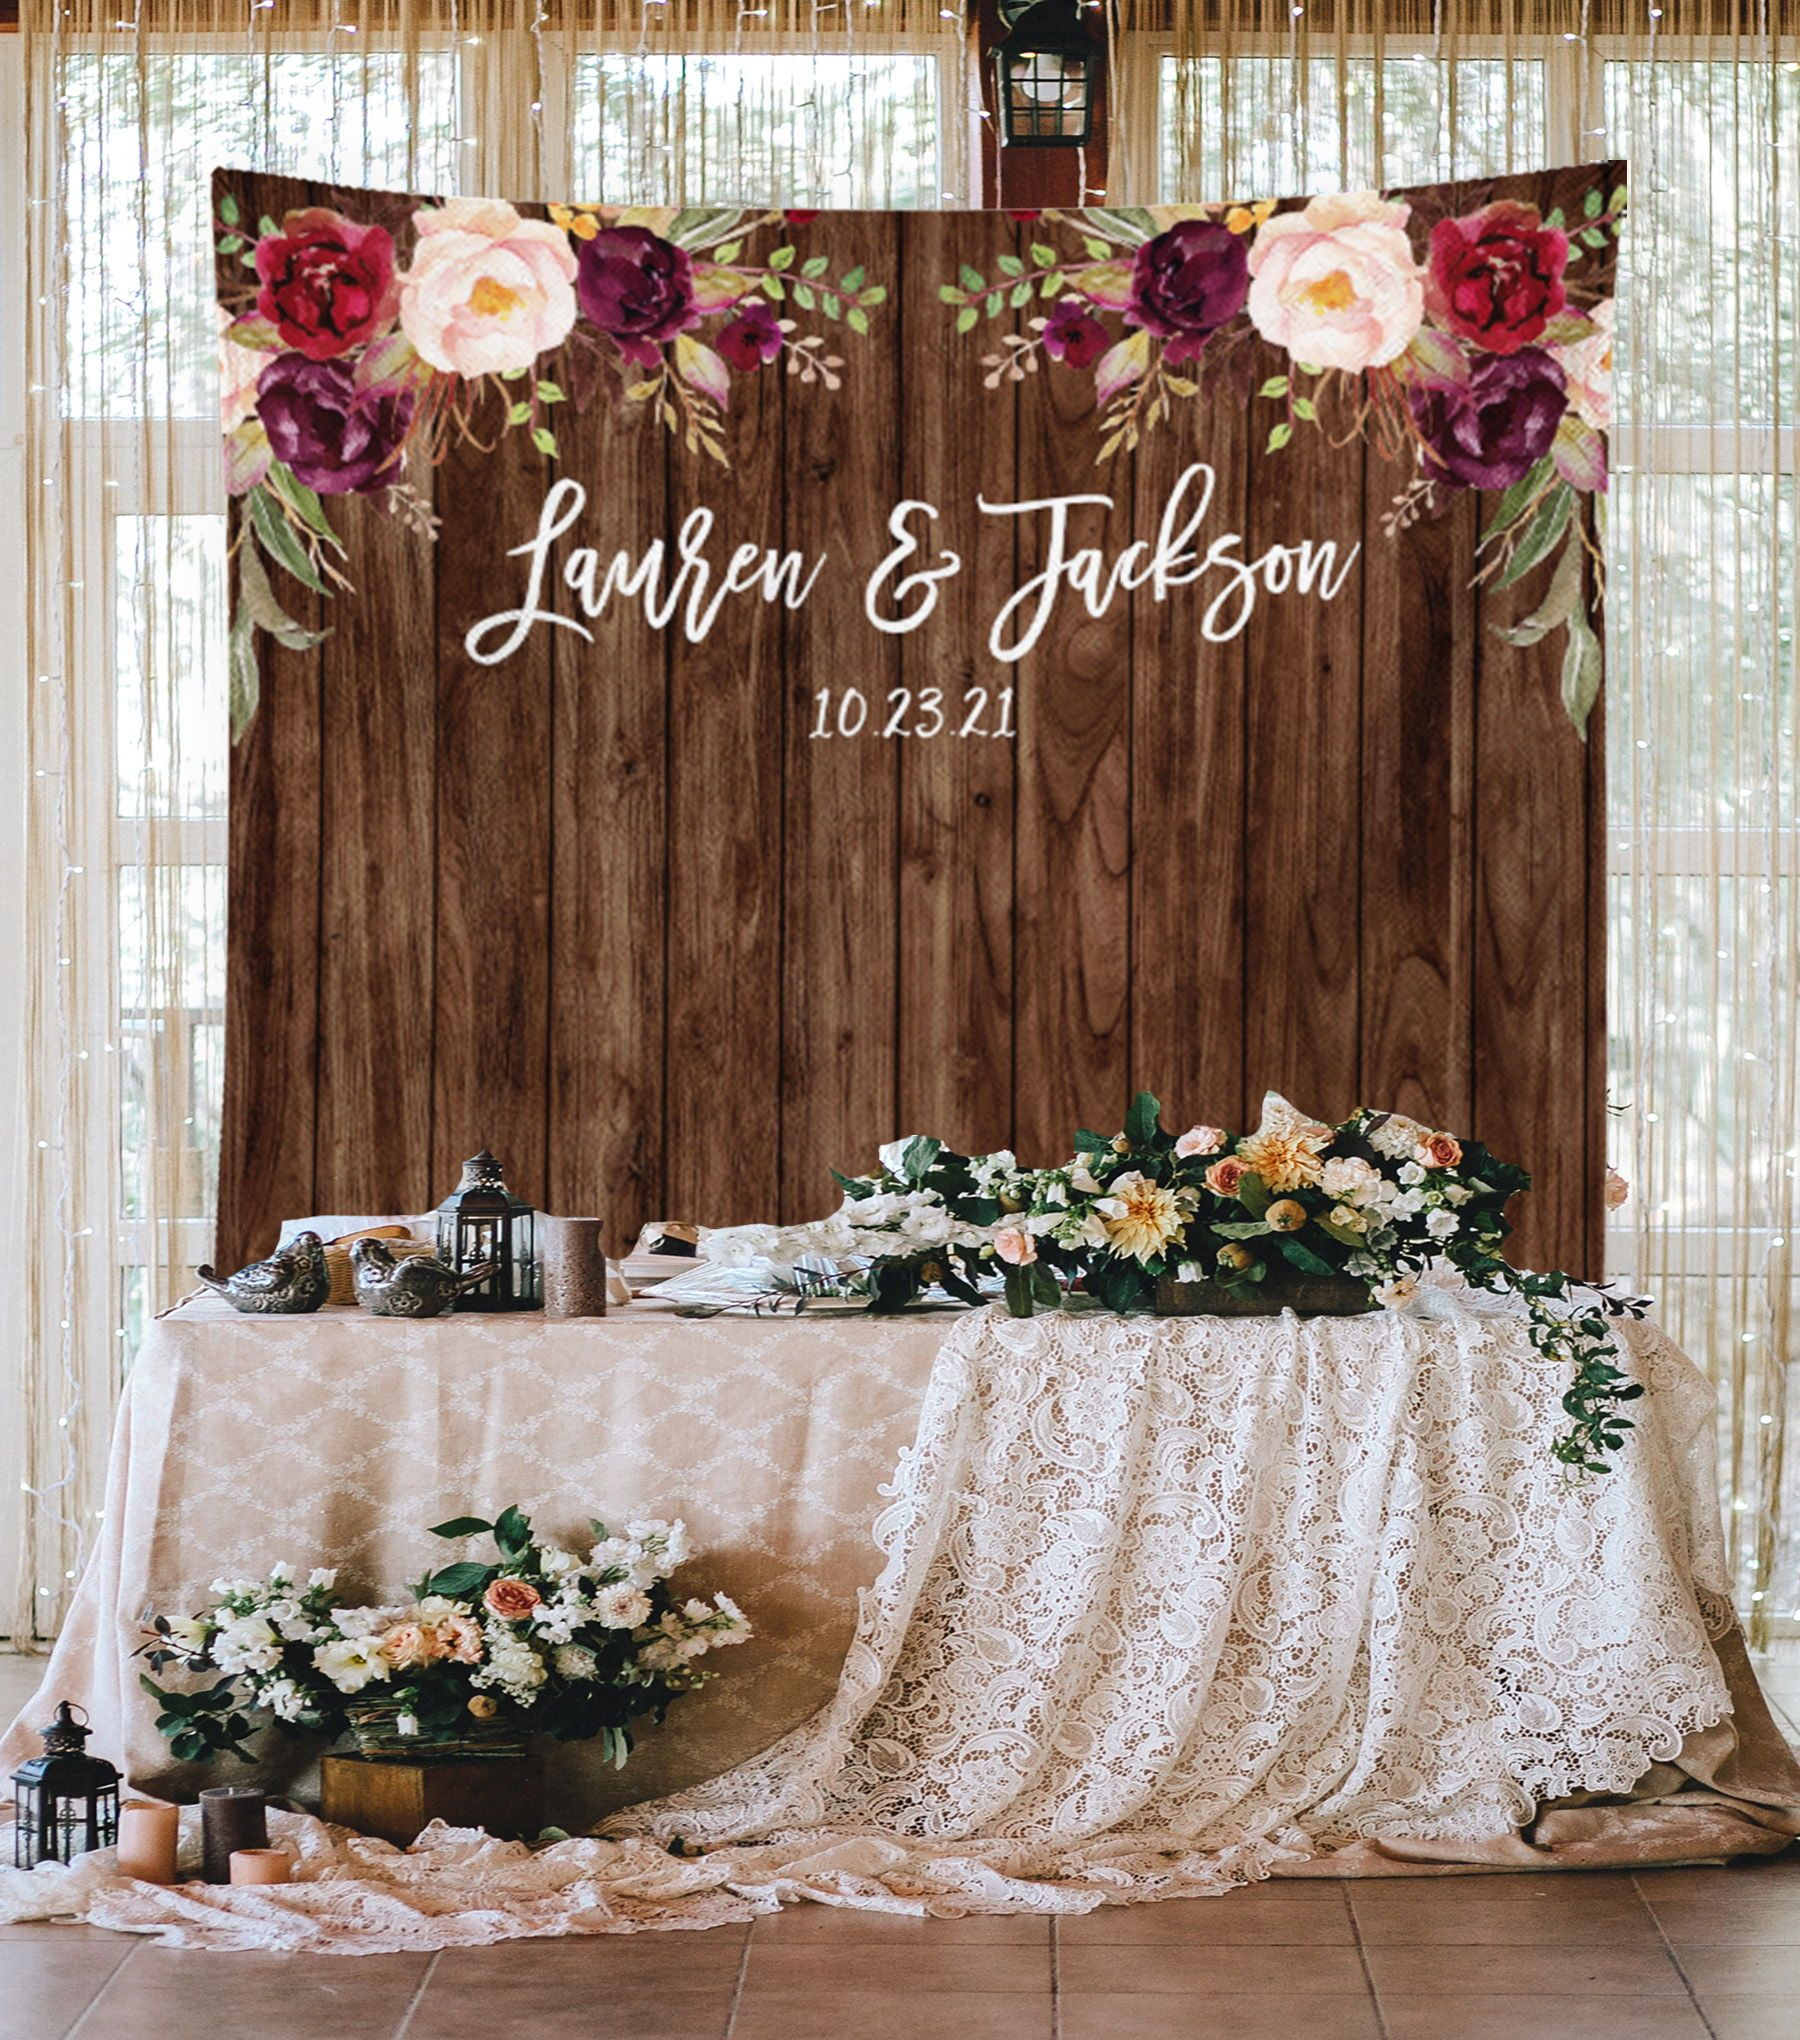 Wedding Table Decorations: Wedding Backdrop Name, Wedding Reception Decorations Boho